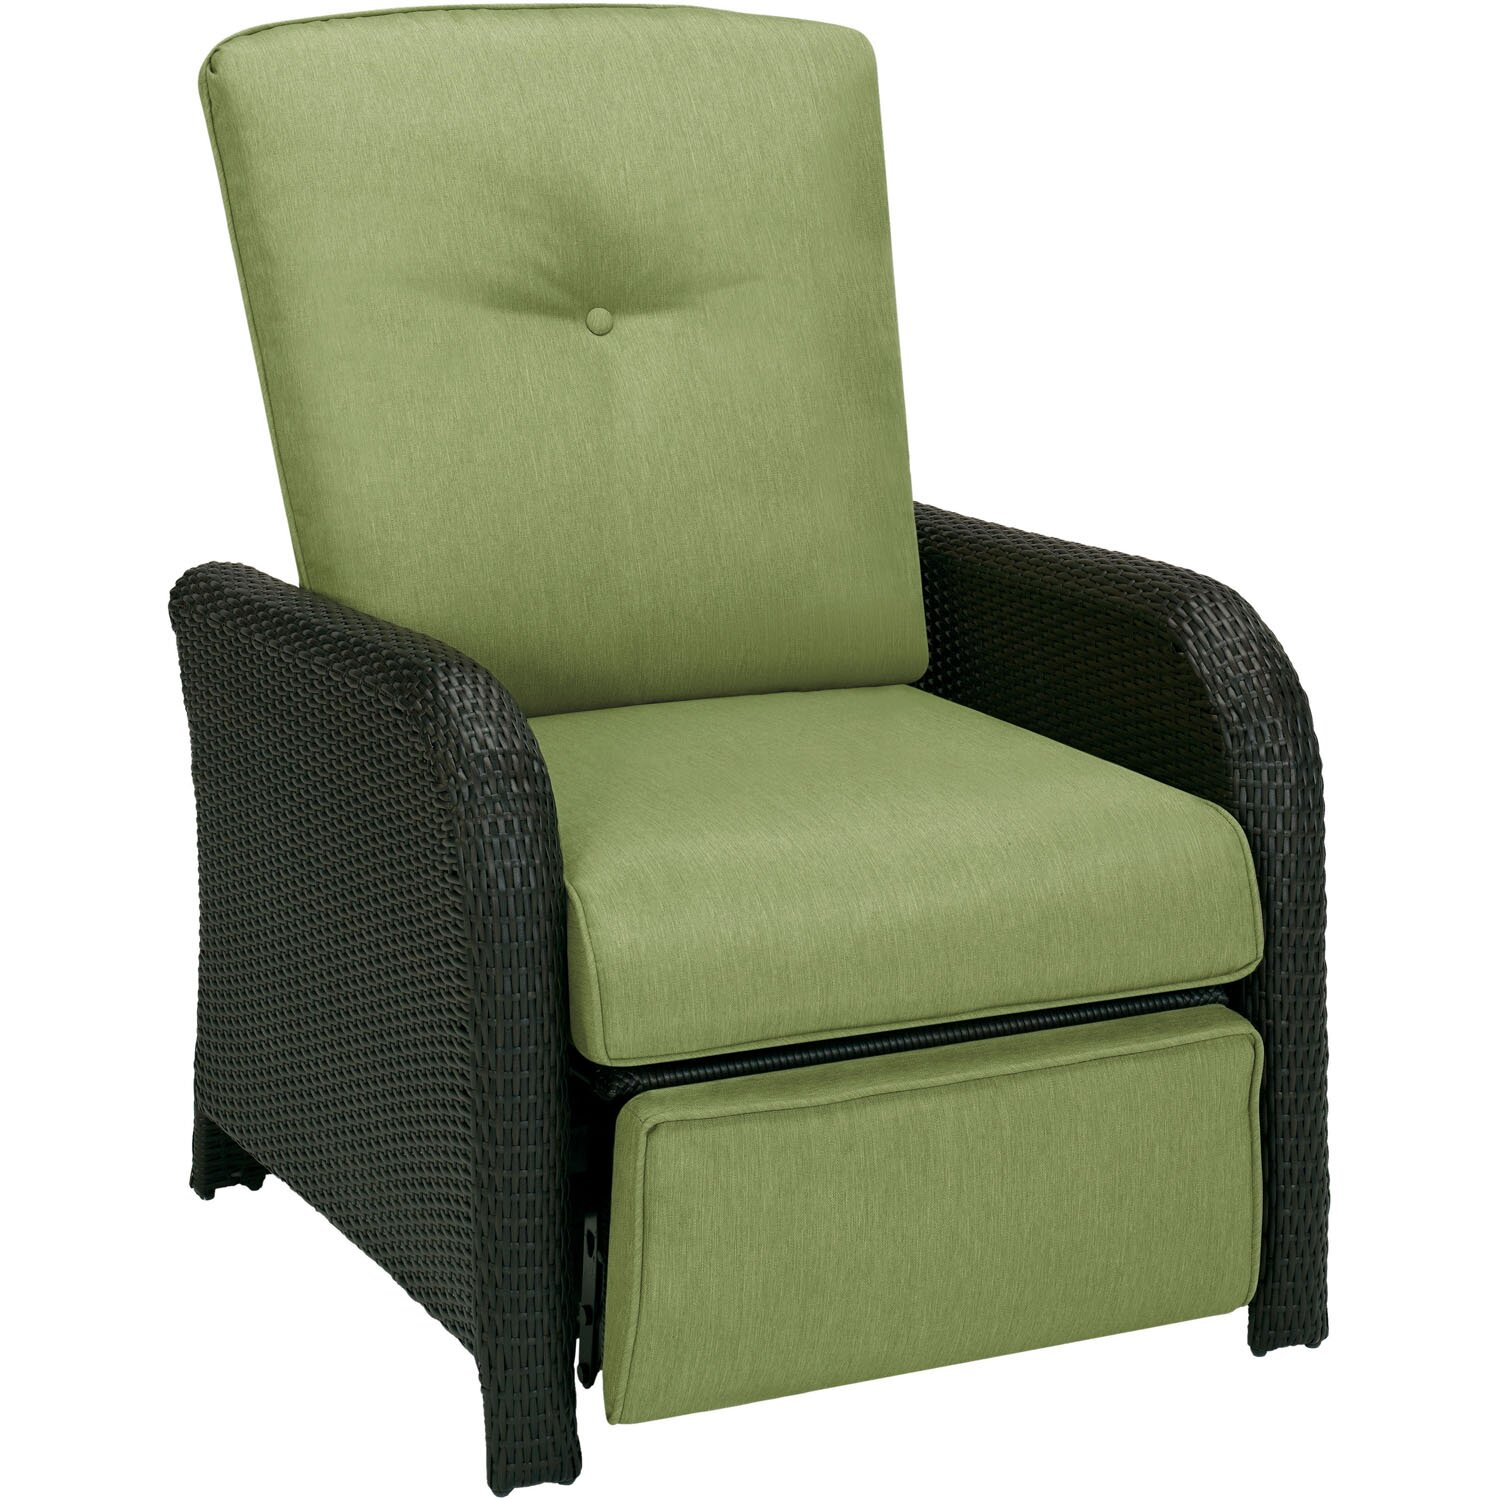 Darby Home Co Barrand Luxury Recliner Chair With Cushions Reviews Way